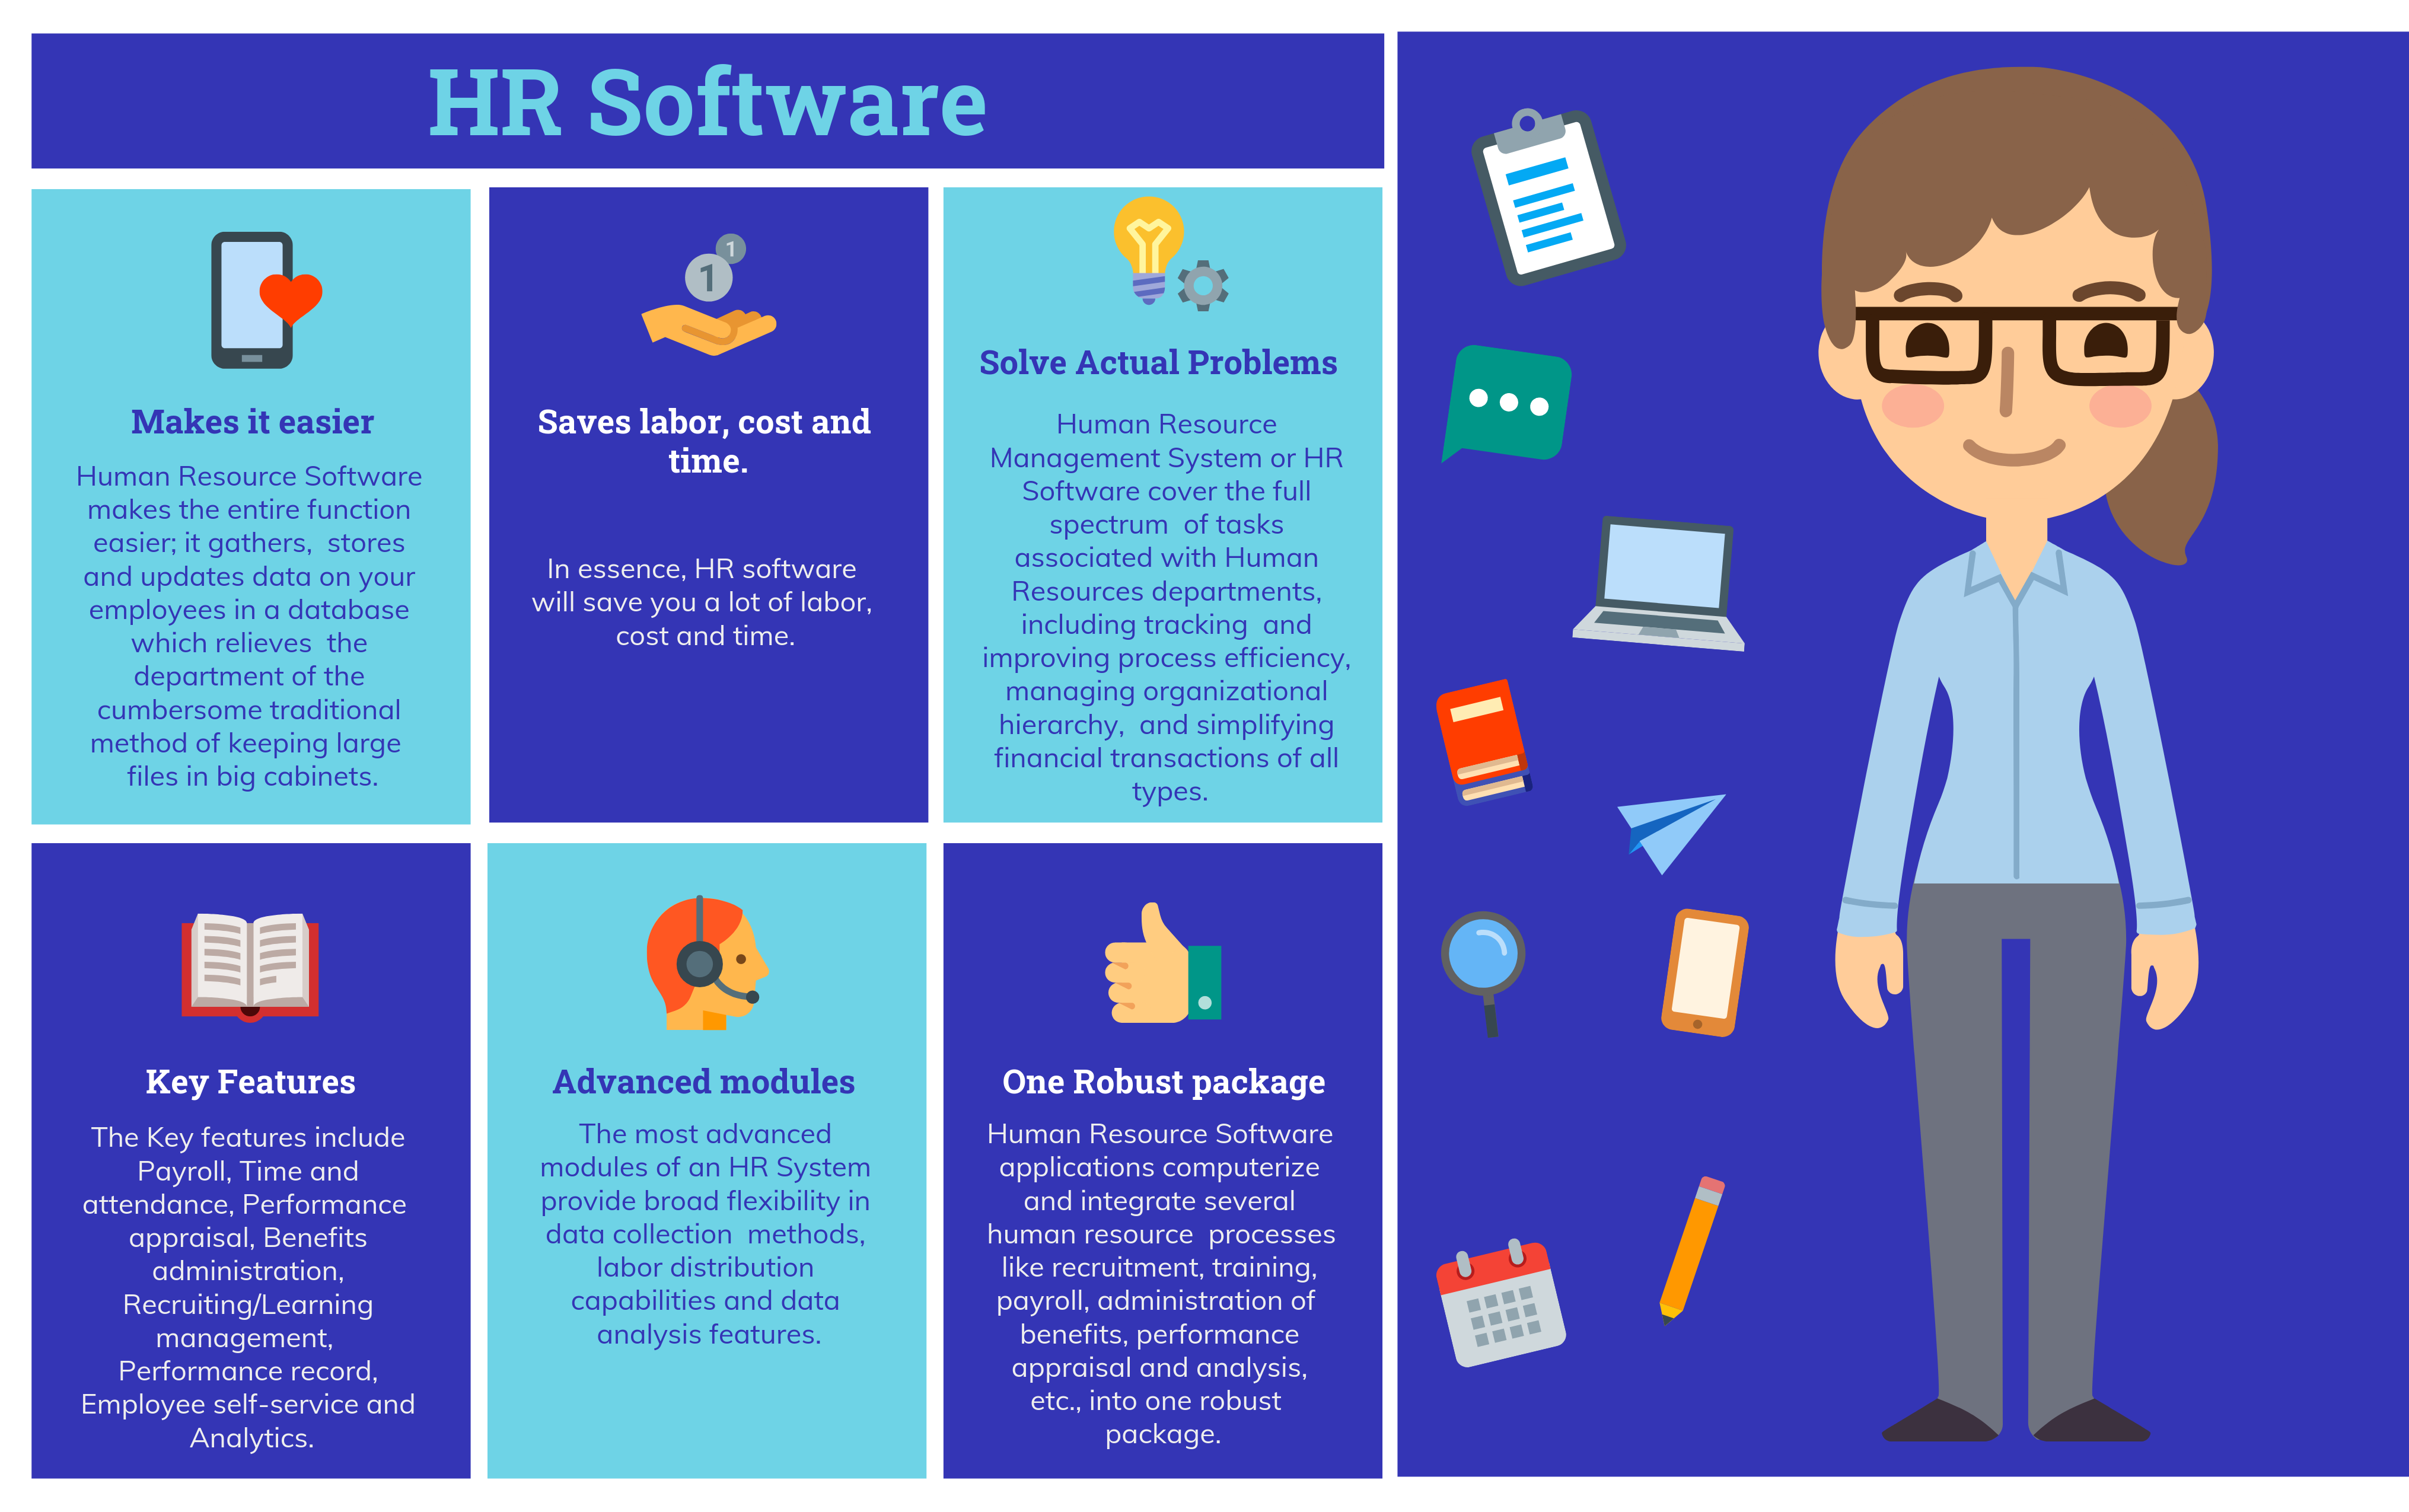 Top 19 Free And Open Source Human Resource Hr Software In 2020 Reviews Features Pricing Comparison Pat Research B2b Reviews Buying Guides Best Prac In 2020 Human Resources Technology Trends Resources